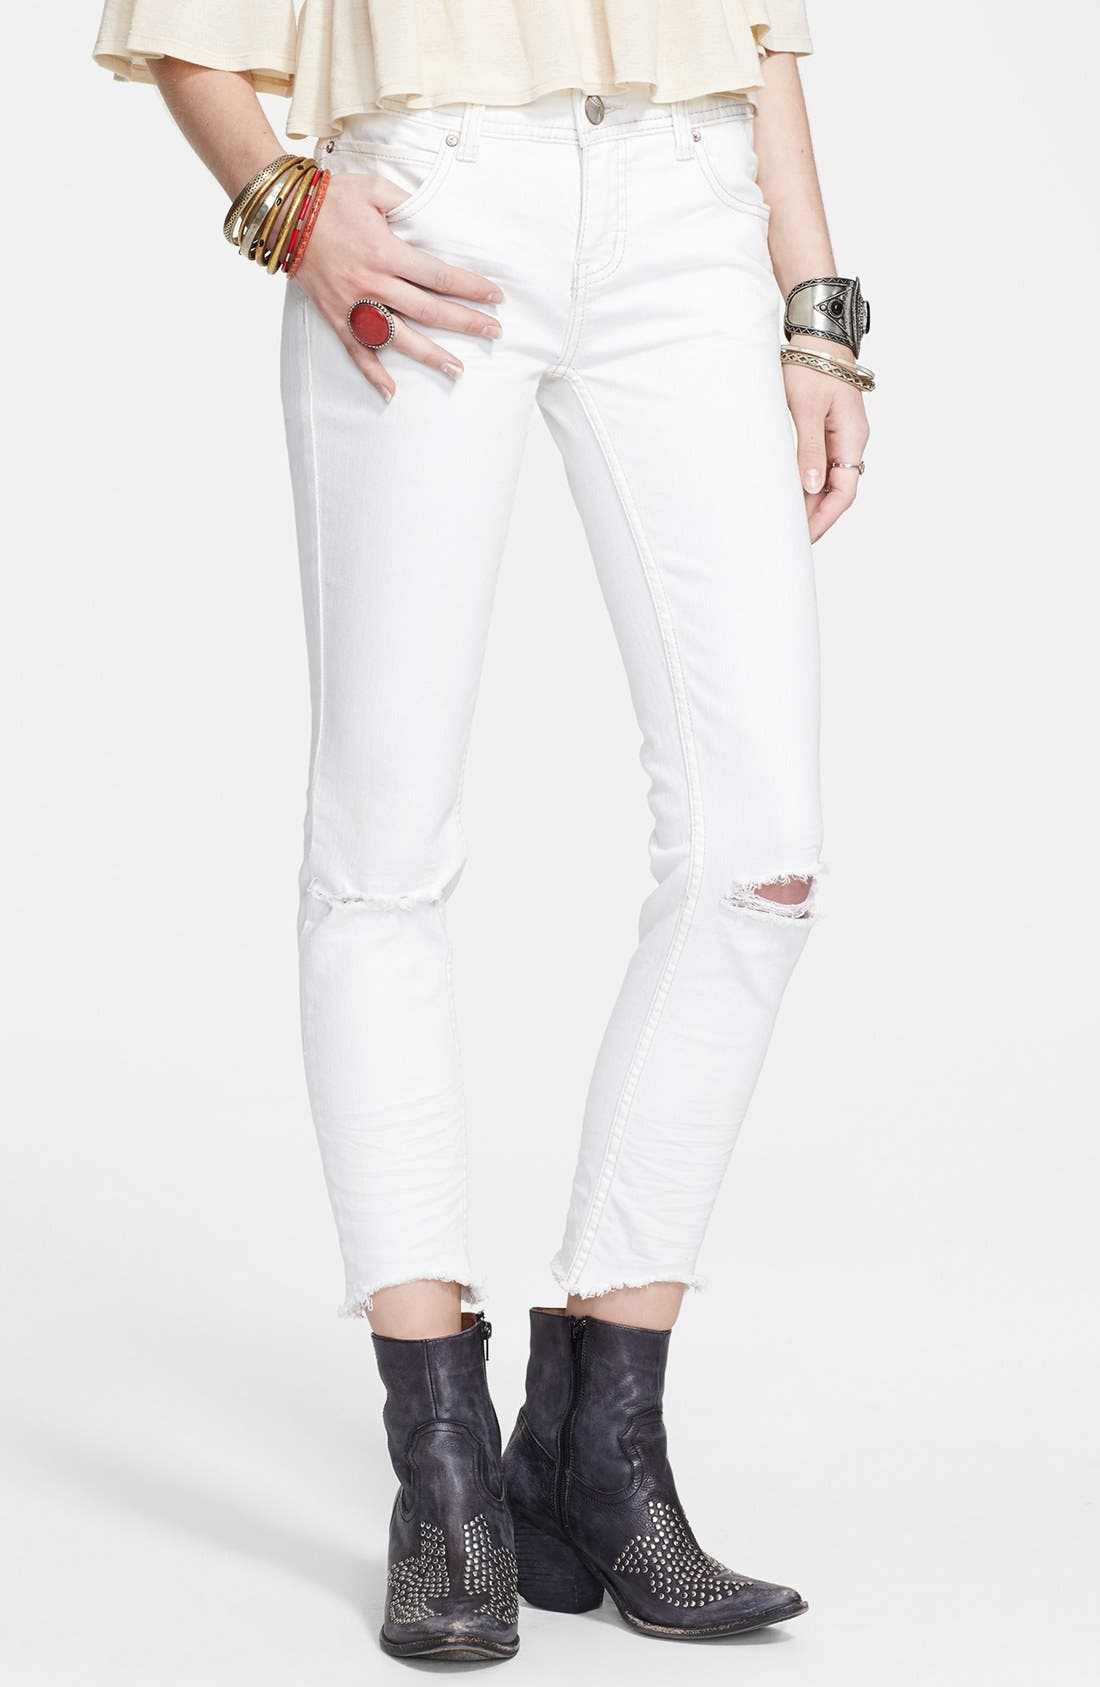 Alternate Image 1 Selected - Free People Mid Rise Skinny Jeans